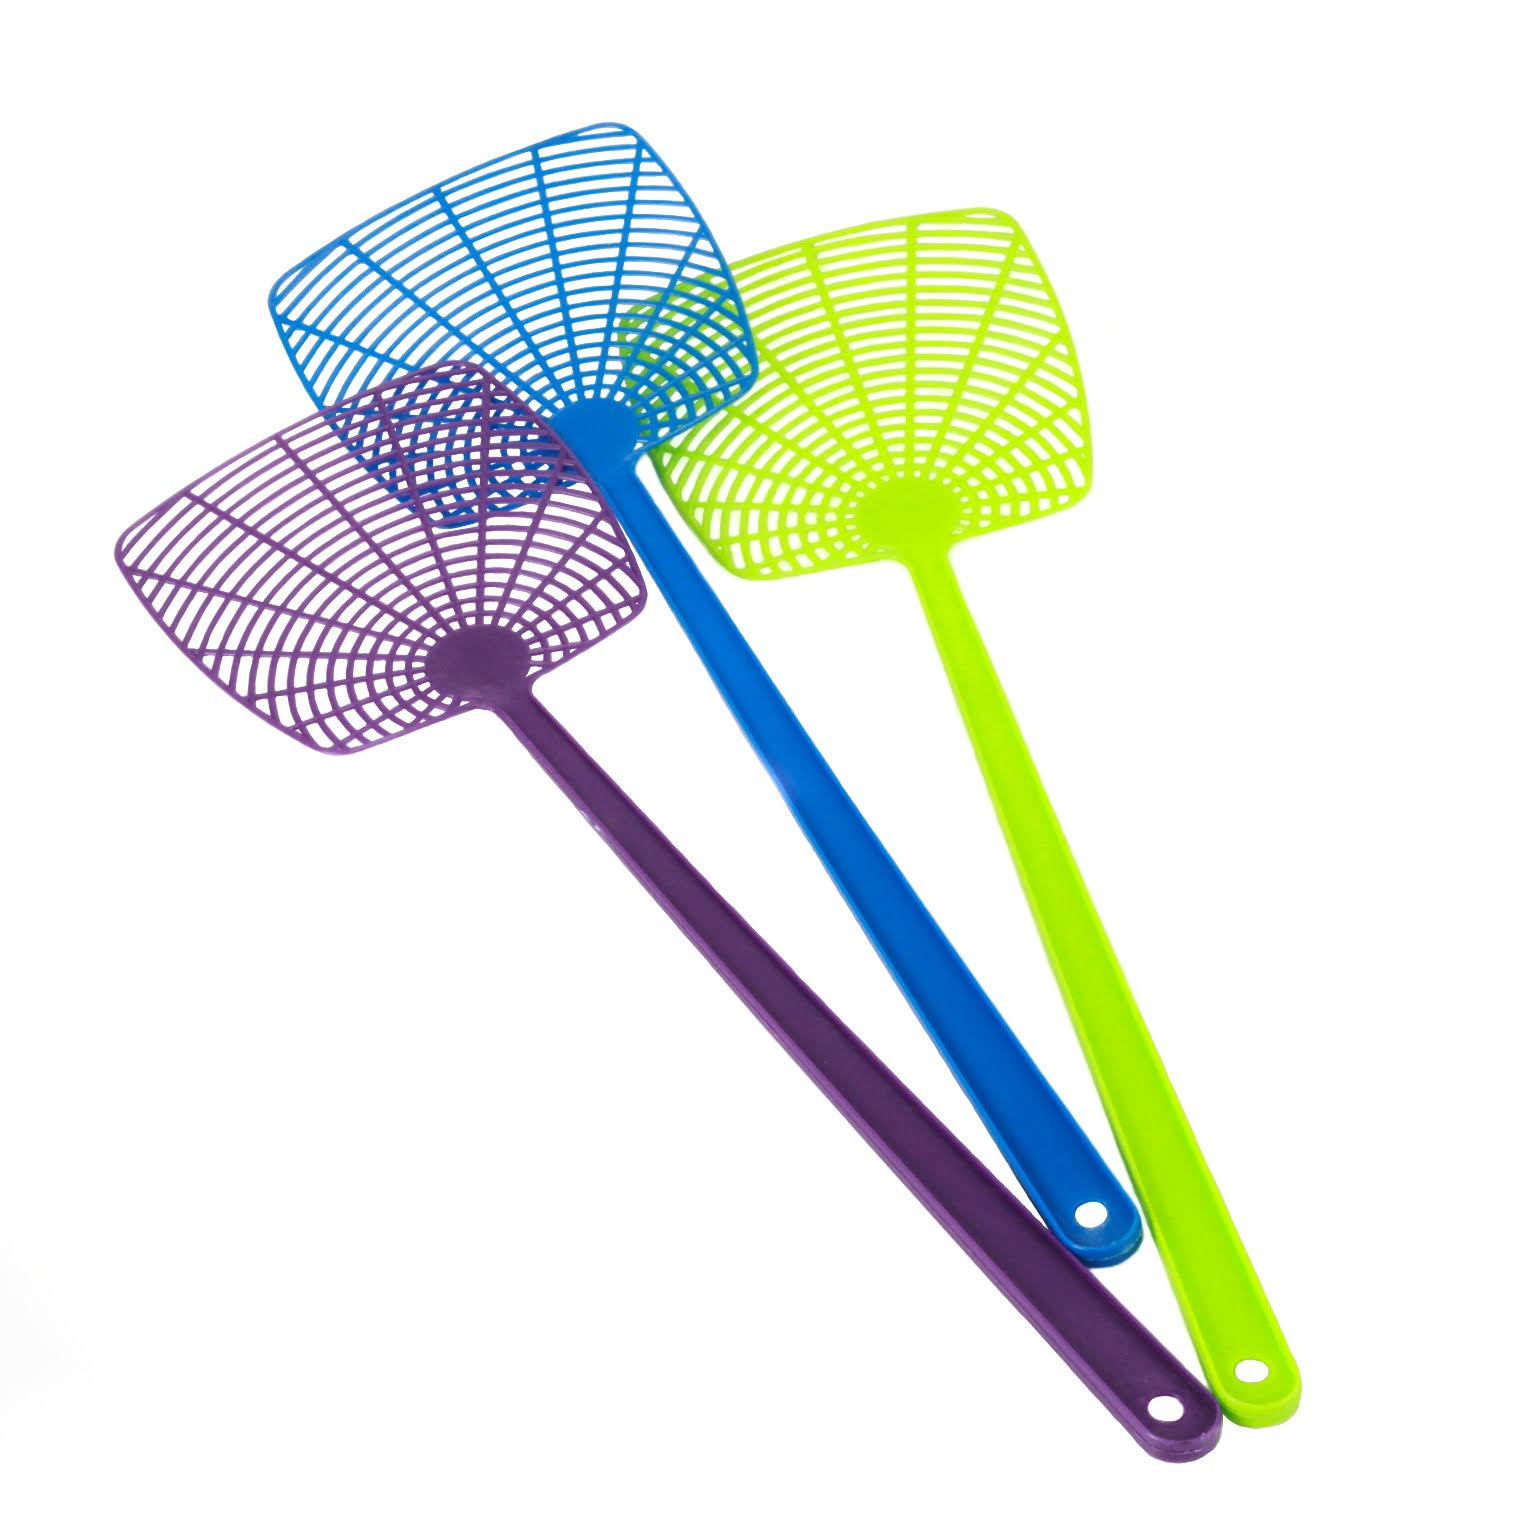 Case of [144] Fly Swatter